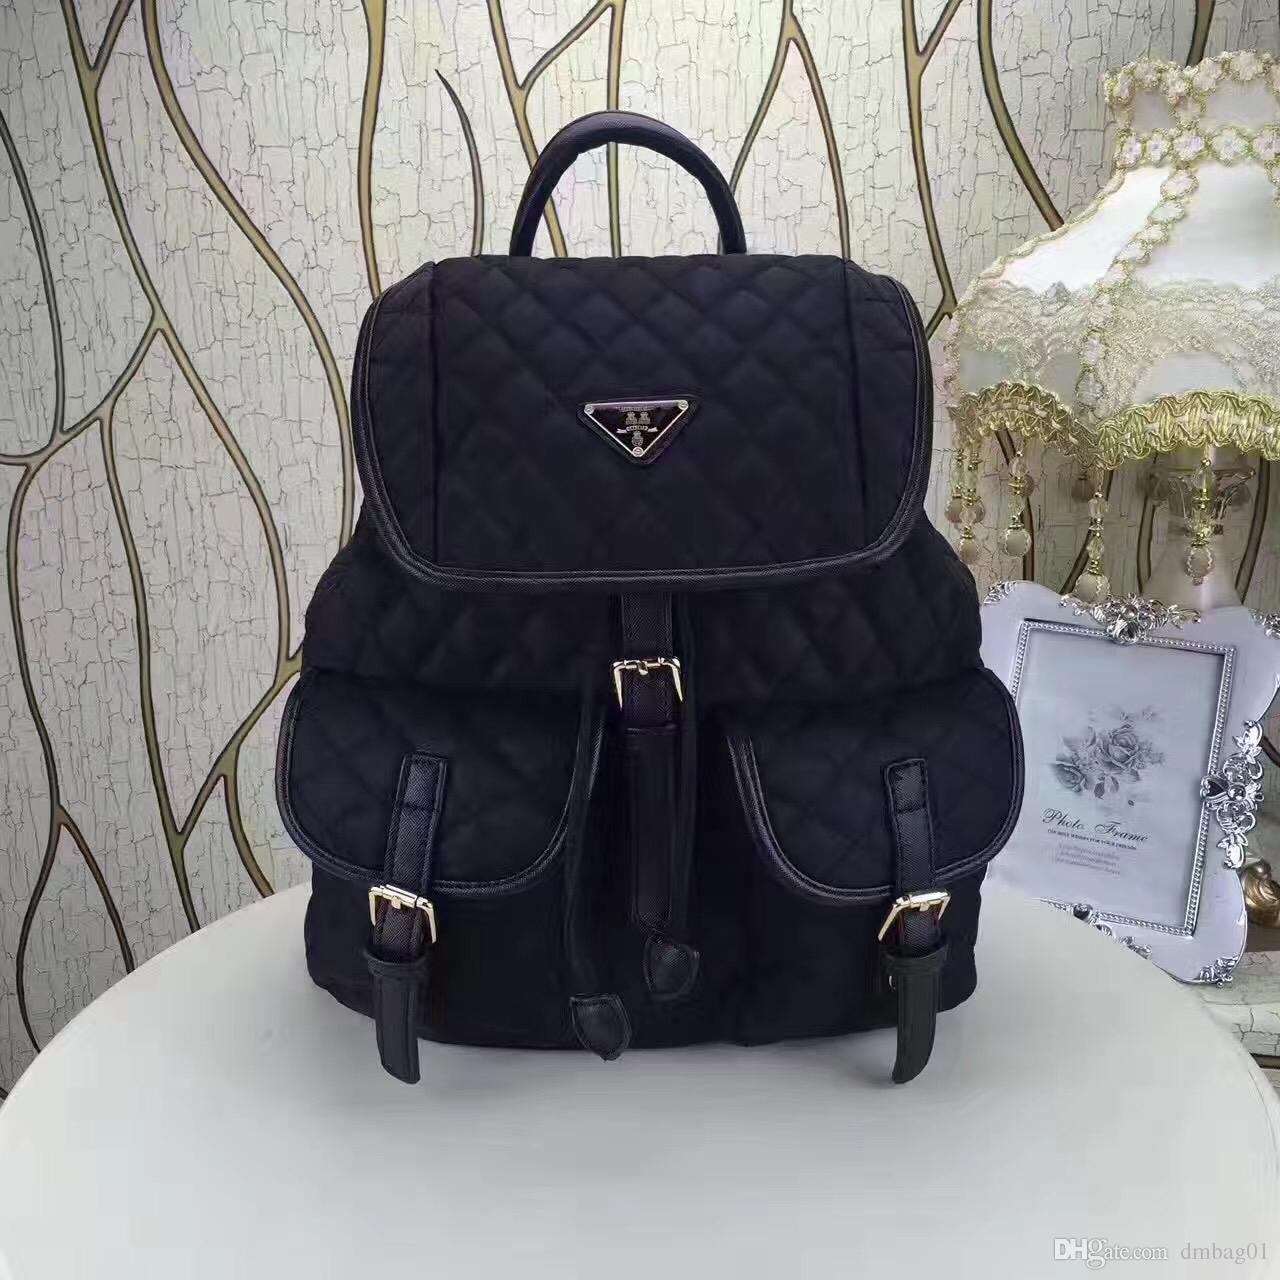 Pink sugao famous brand designer backpack high quality luxury bag jpg  1280x1280 Designer backpack purses 9f5809ee52486